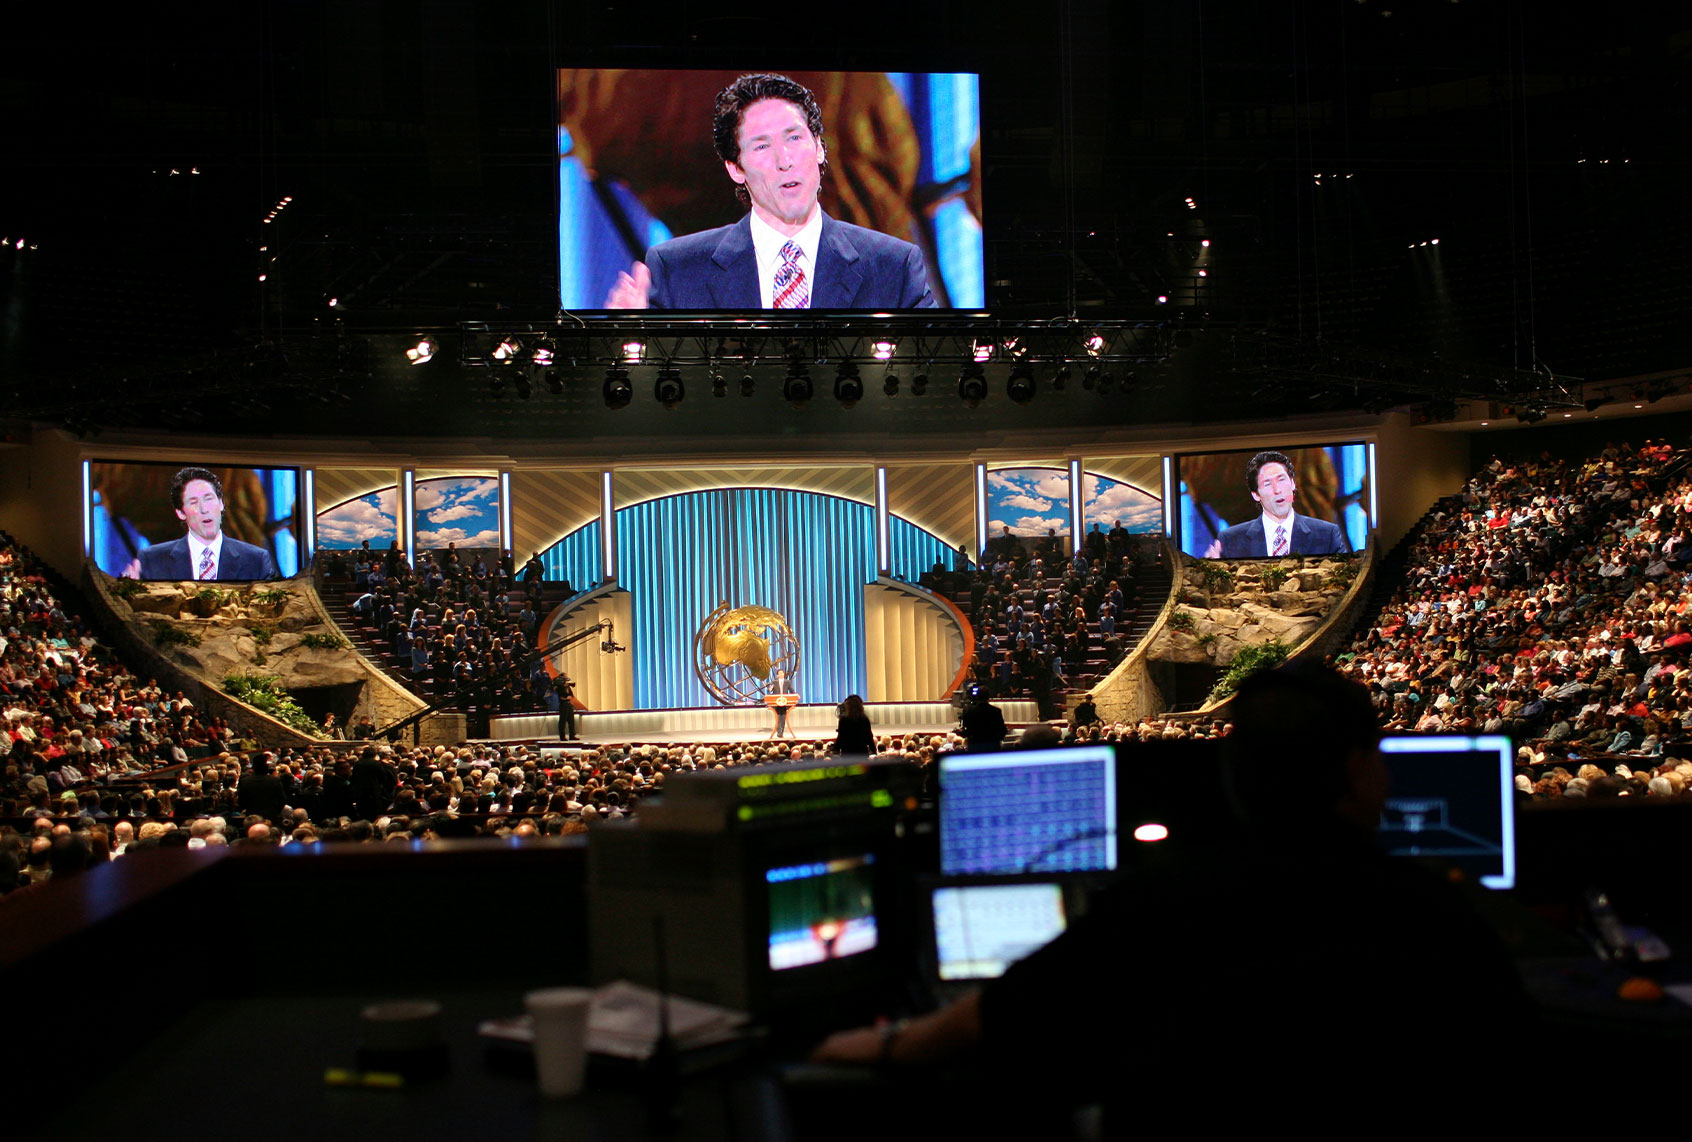 mega-church-joel-osteen-0402211.jpg